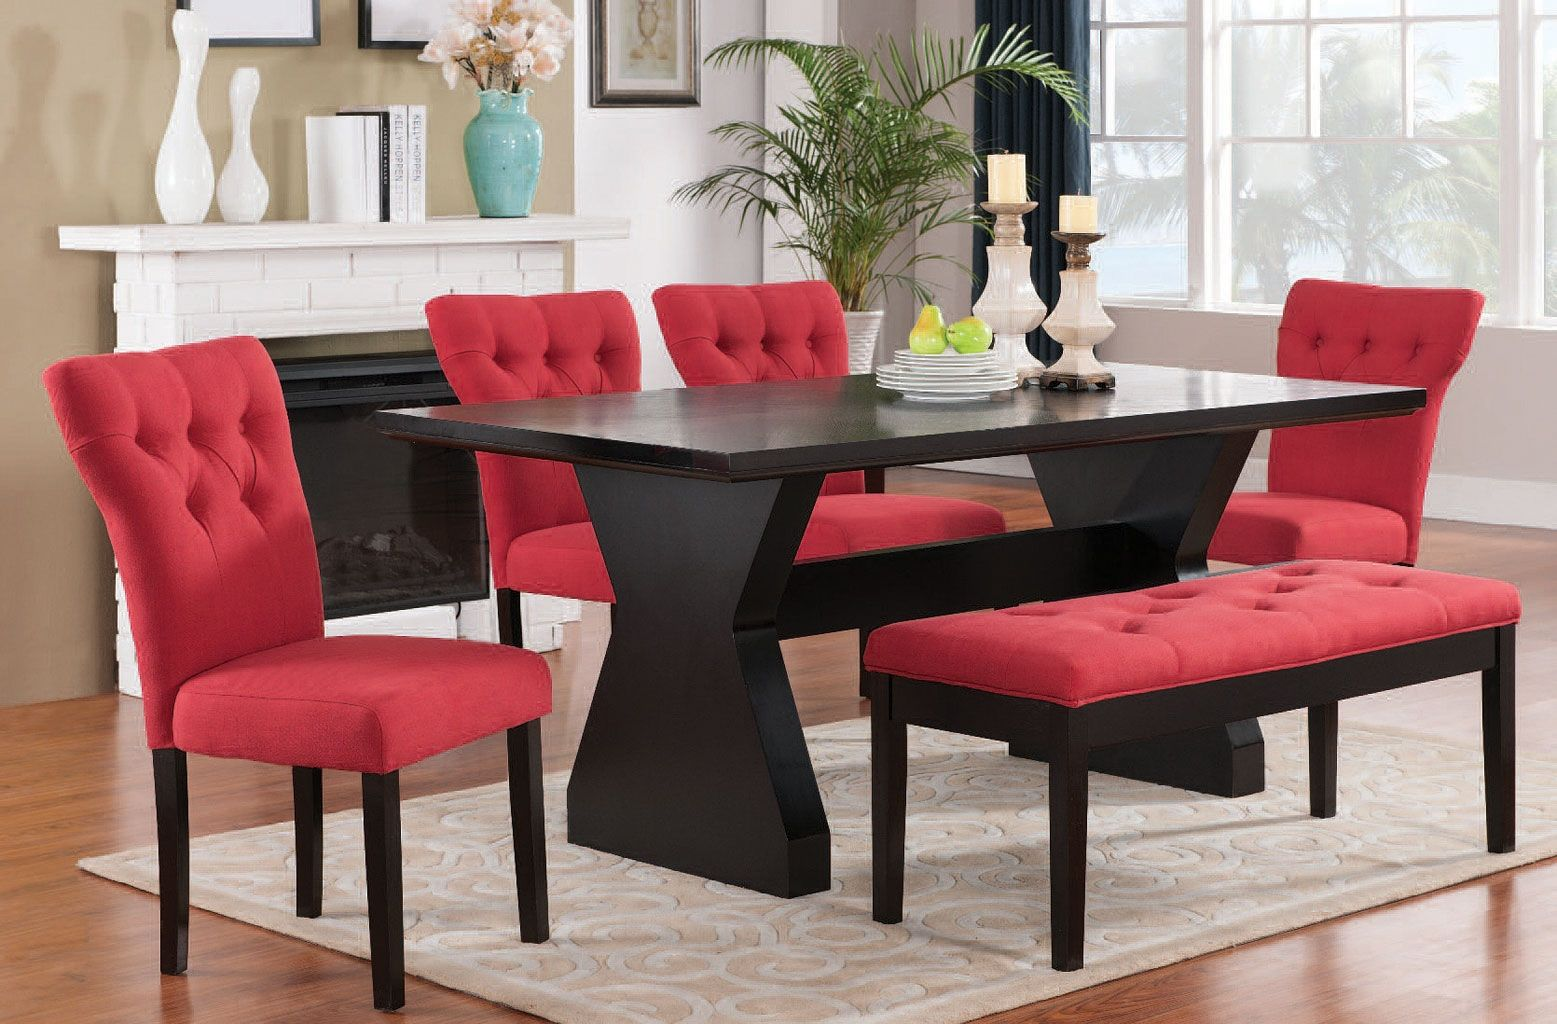 Sillas Cocina Rojas Black Kitchen Table With Red Chairs Sillas Sillas